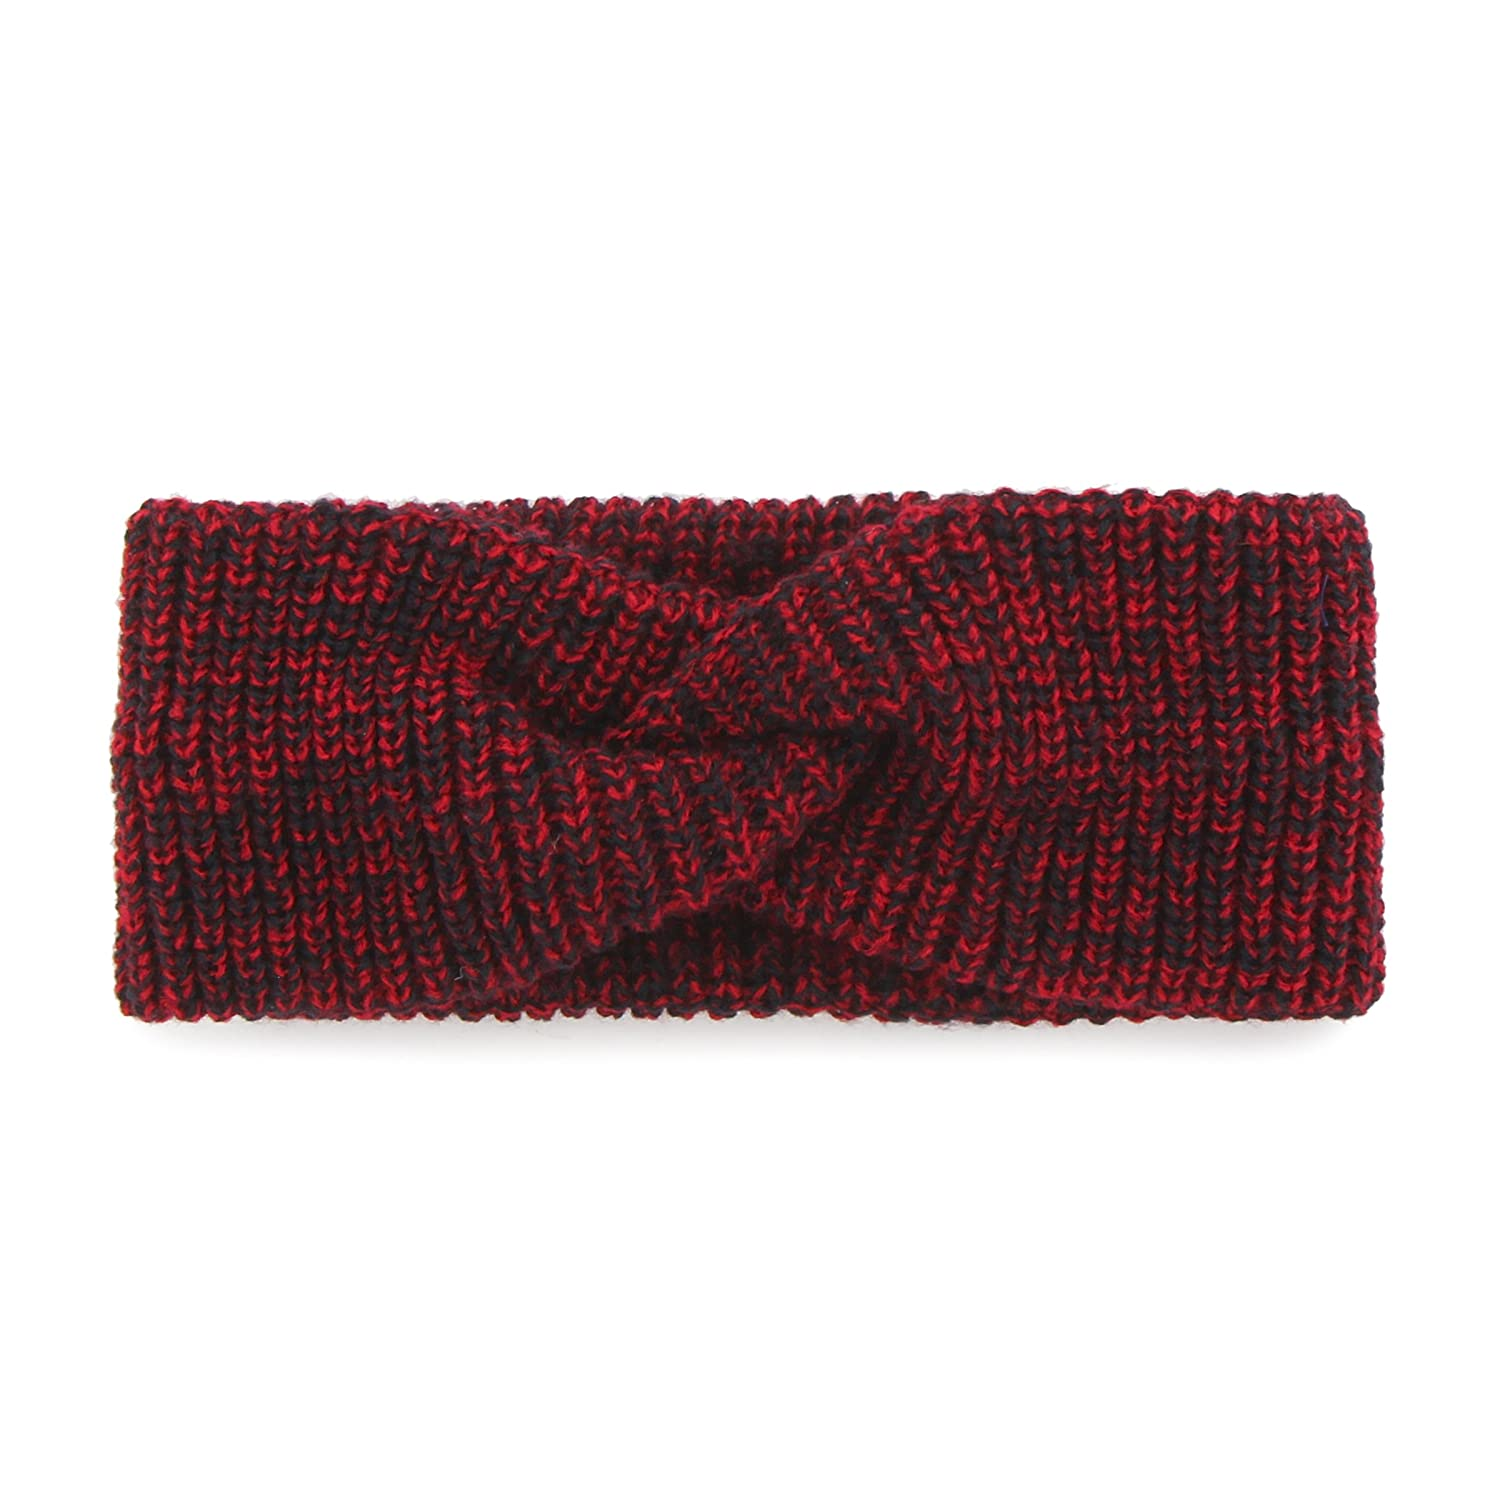 2fbe1d1177d166 Amazon.com : MLB Atlanta Braves Women's '47 Prima Twisted Headband, Red :  Clothing